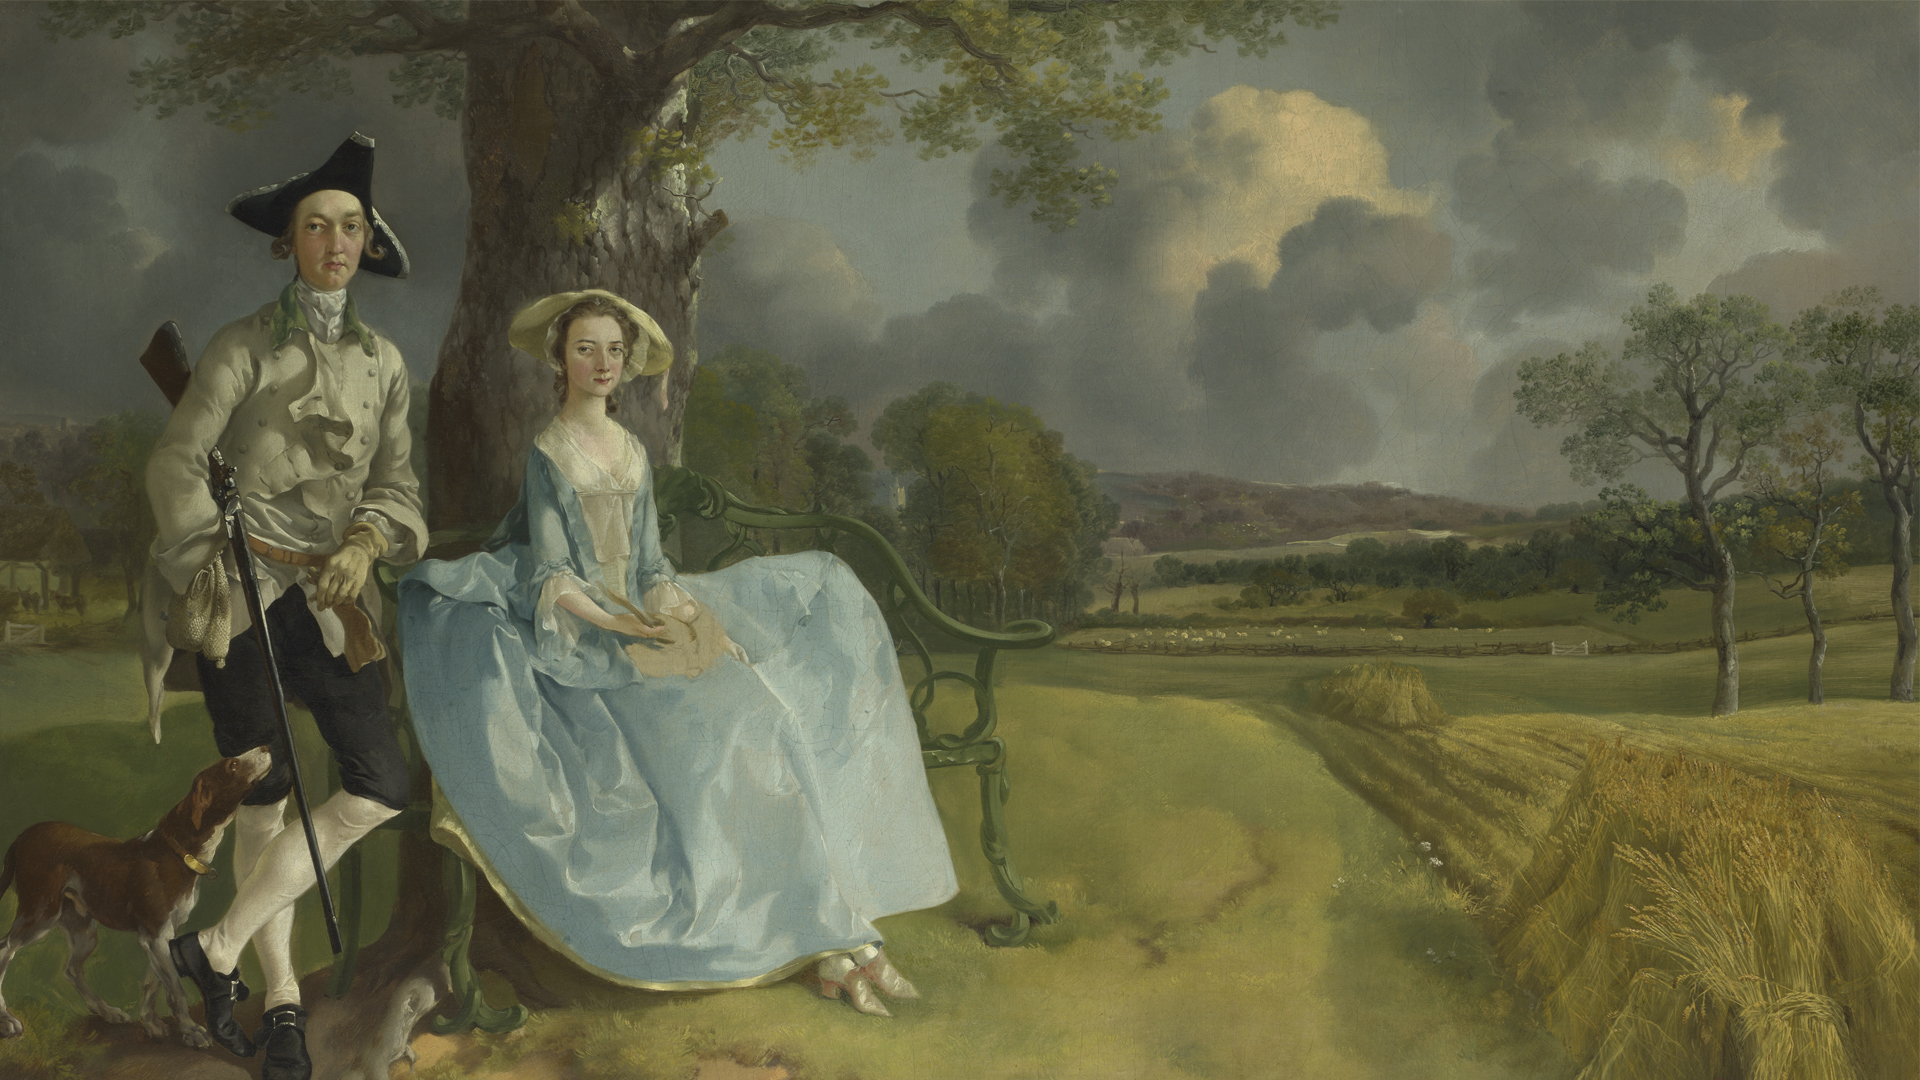 NG6301 - Thomas Gainsborough. Mr and Mrs Andrews. About 1750. © The National Gallery, London